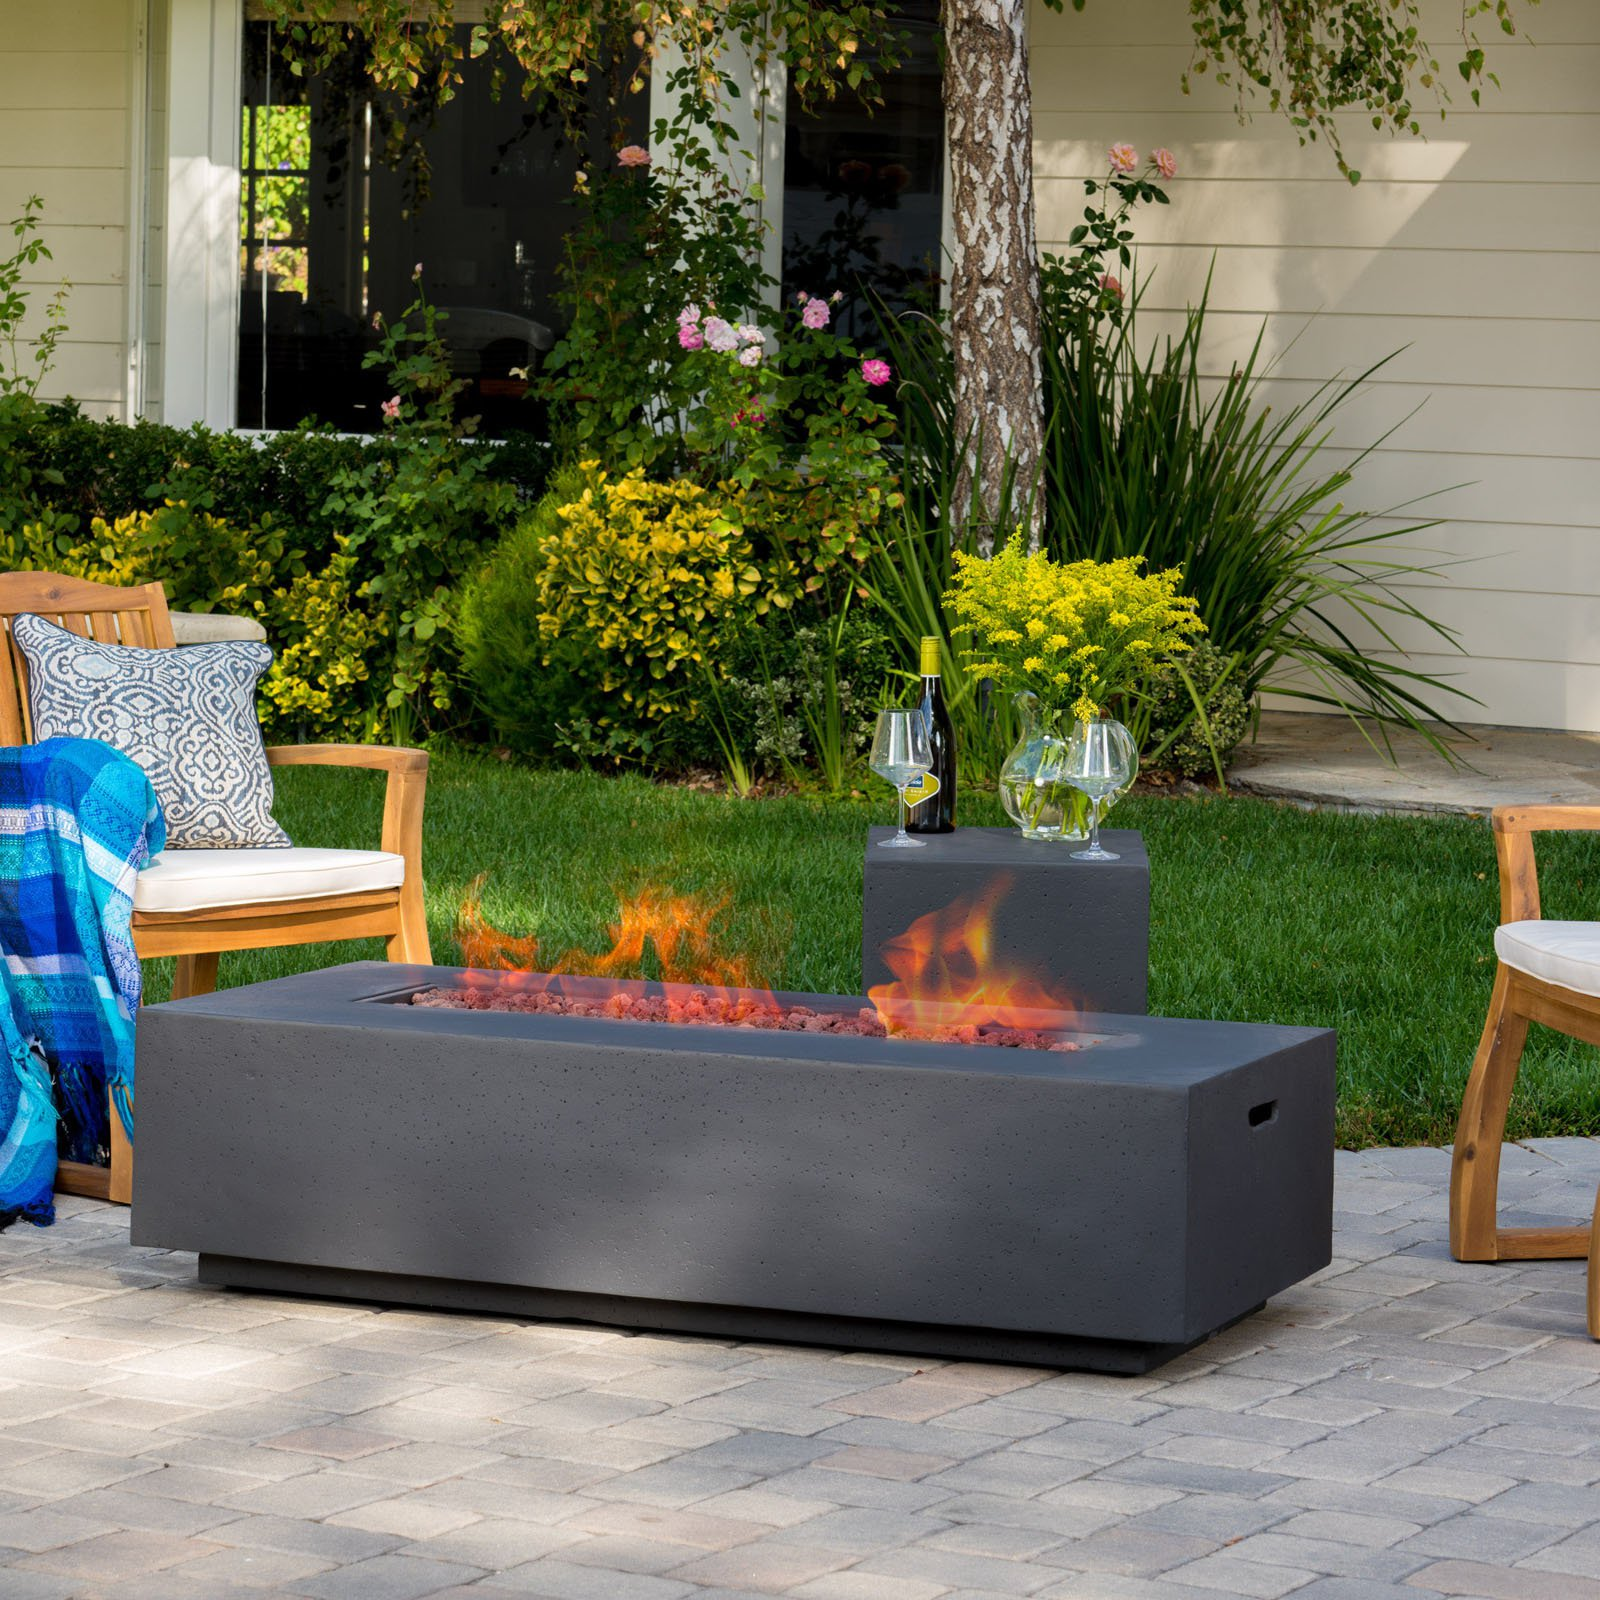 Amelia Propane Firepit Table by Best Selling Home Decor Furniture LLC